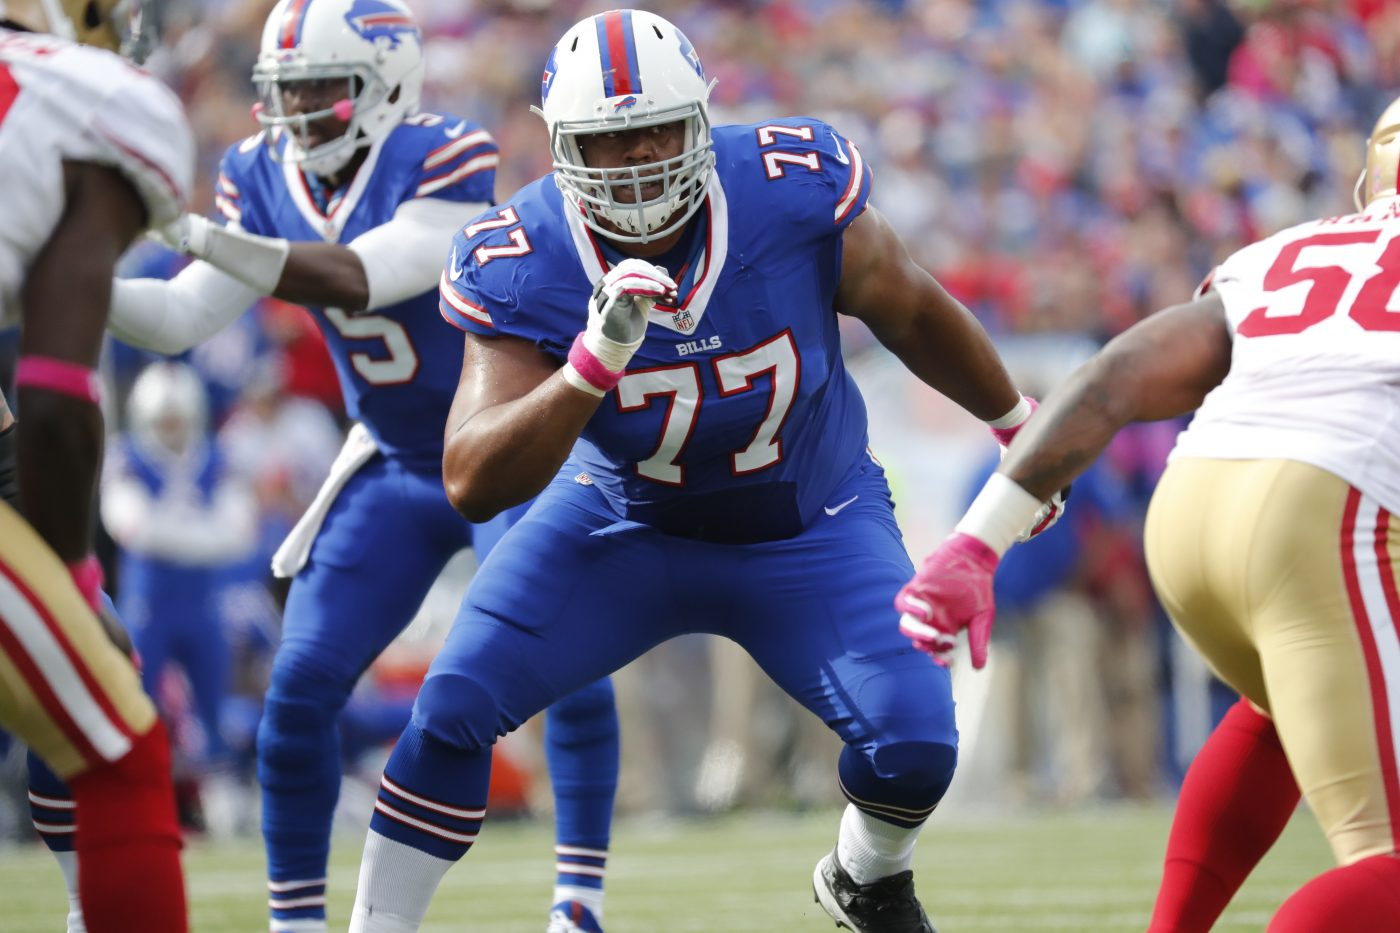 Buffalo Bills left tackle Cordy Glenn. (Harry Scull Jr./Buffalo News)